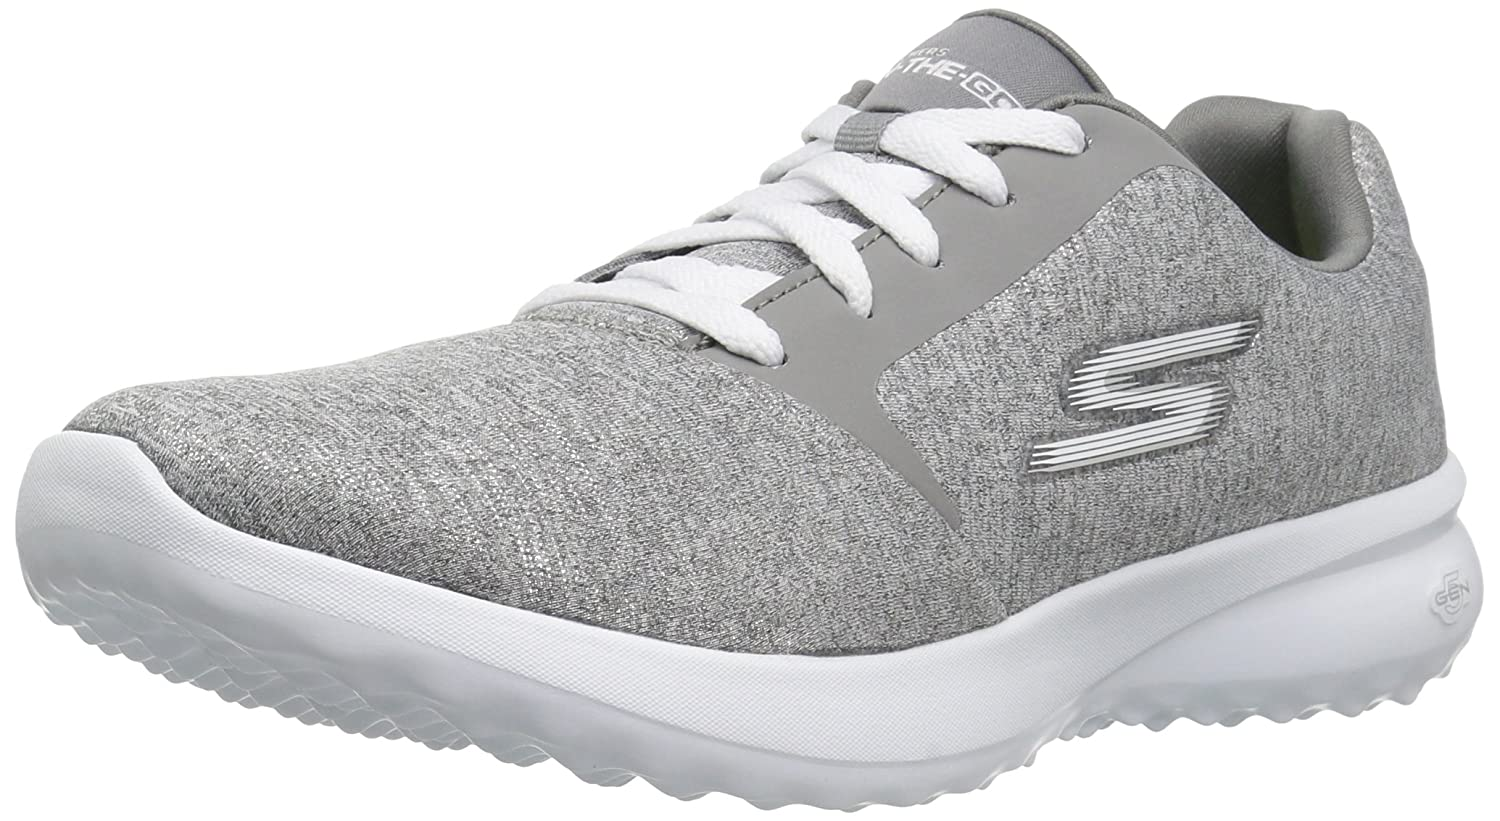 Skechers Performance Women's On The Go City 3 Renovated B01MS7H2DY 5.5 W US|Gray